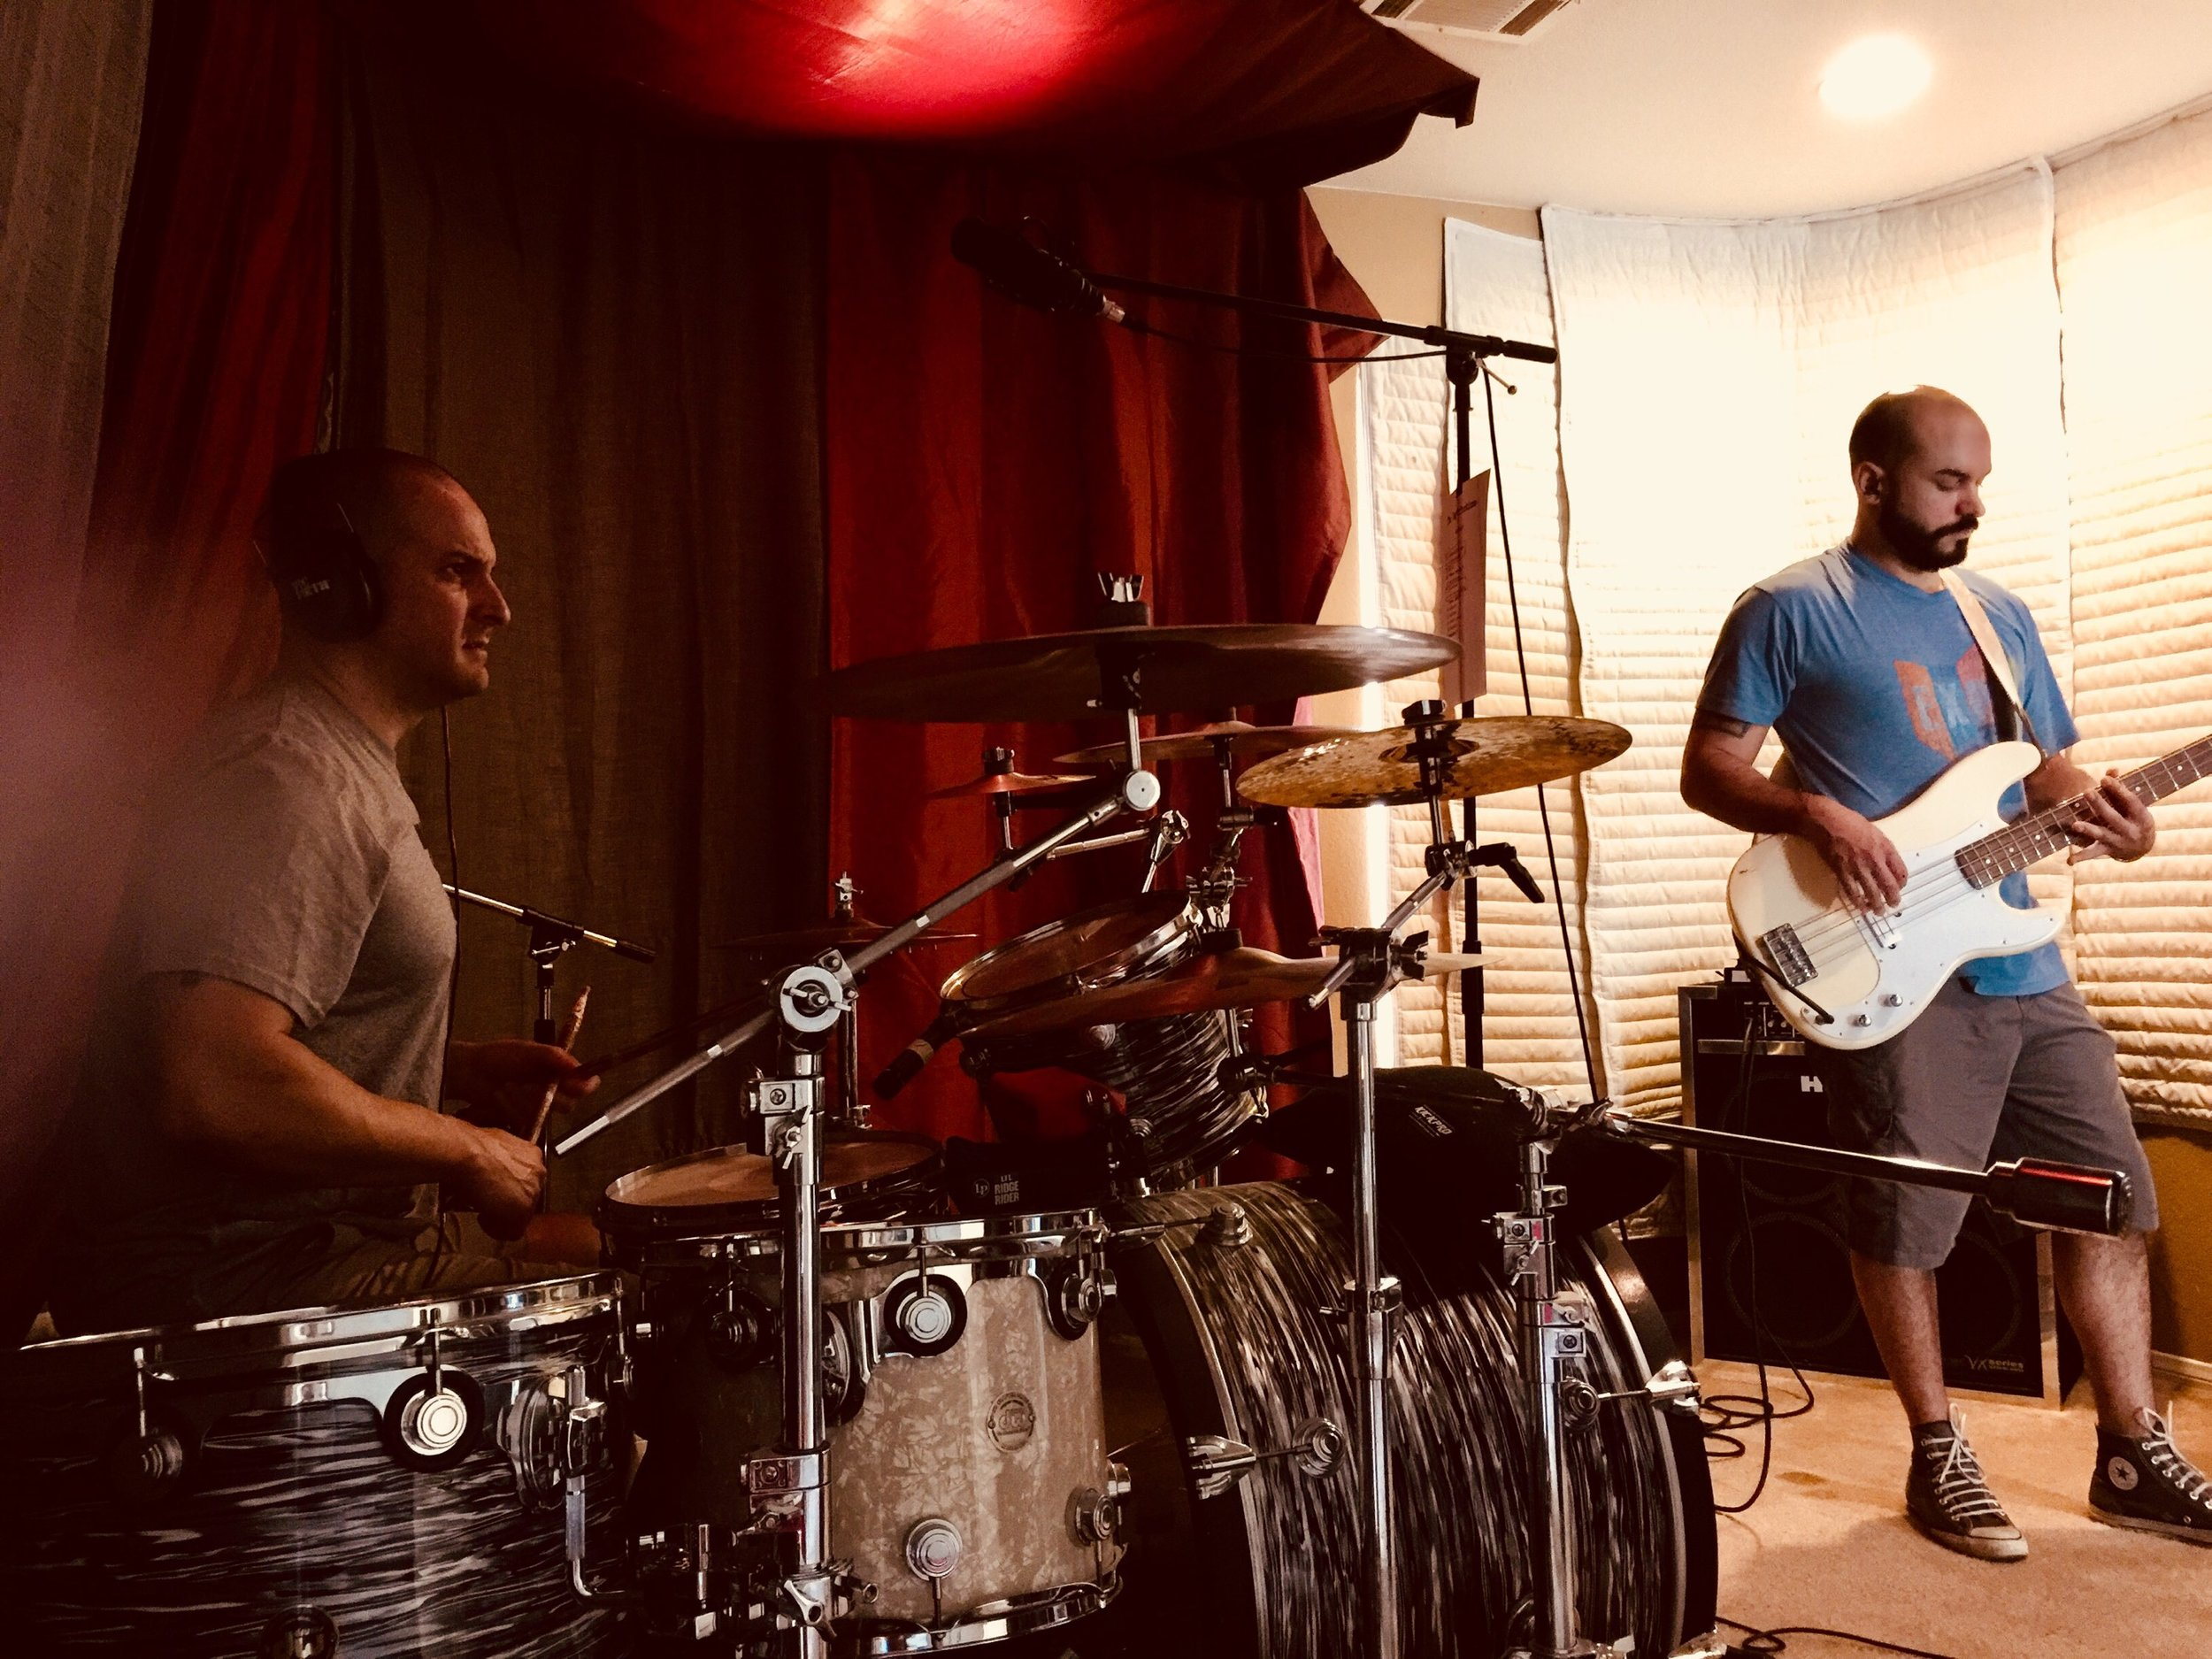 Rich on drums, Eliss on bass supply the girth of The Imperfections' sound.